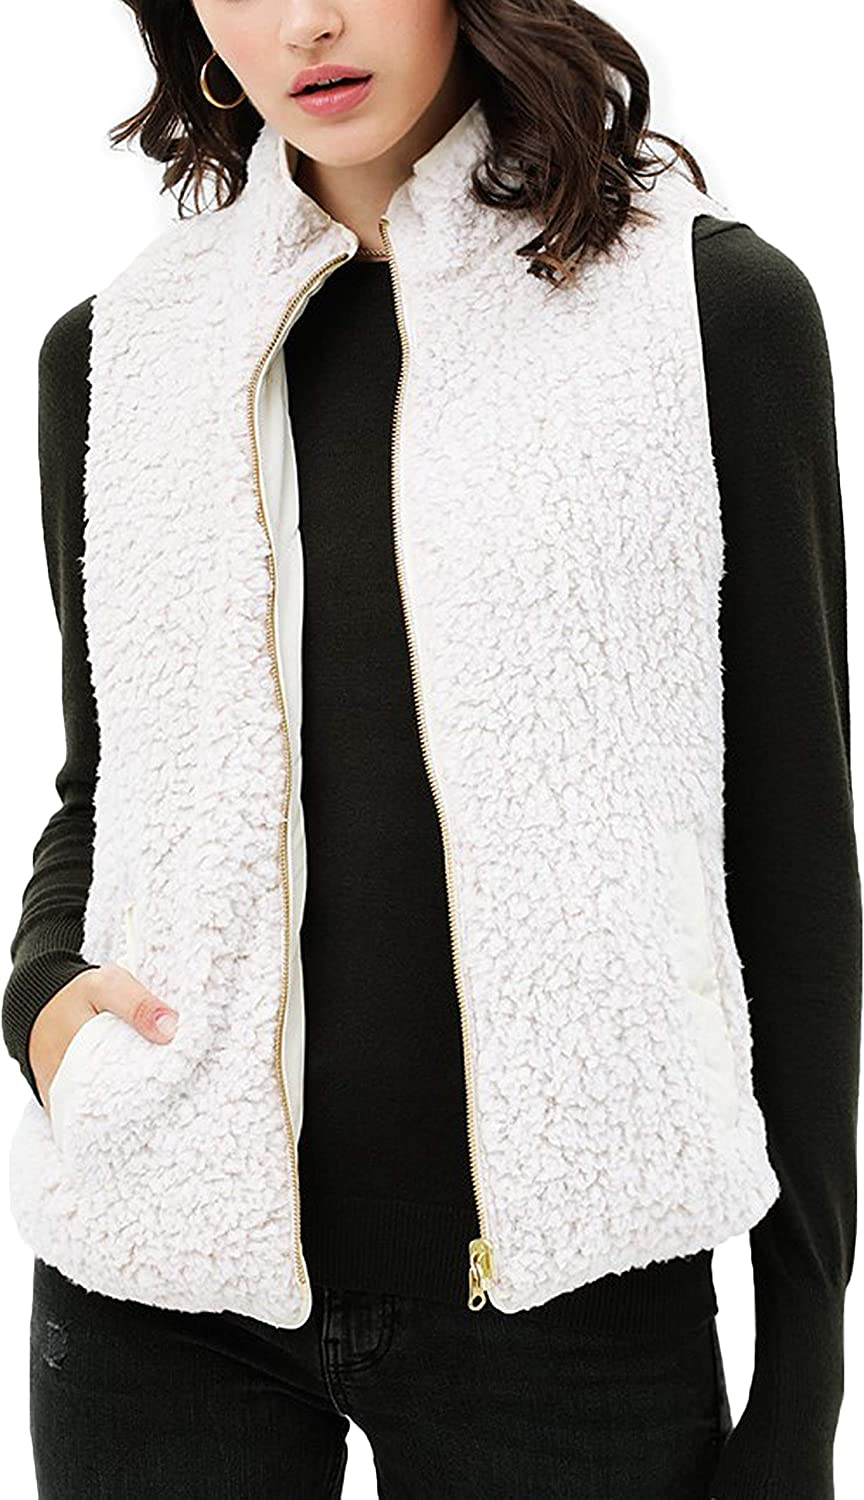 FASHION BOOMY Women's Quilted Padding Vest - Reversible Sherpa Fleece Zip Up Jacket with Pockets